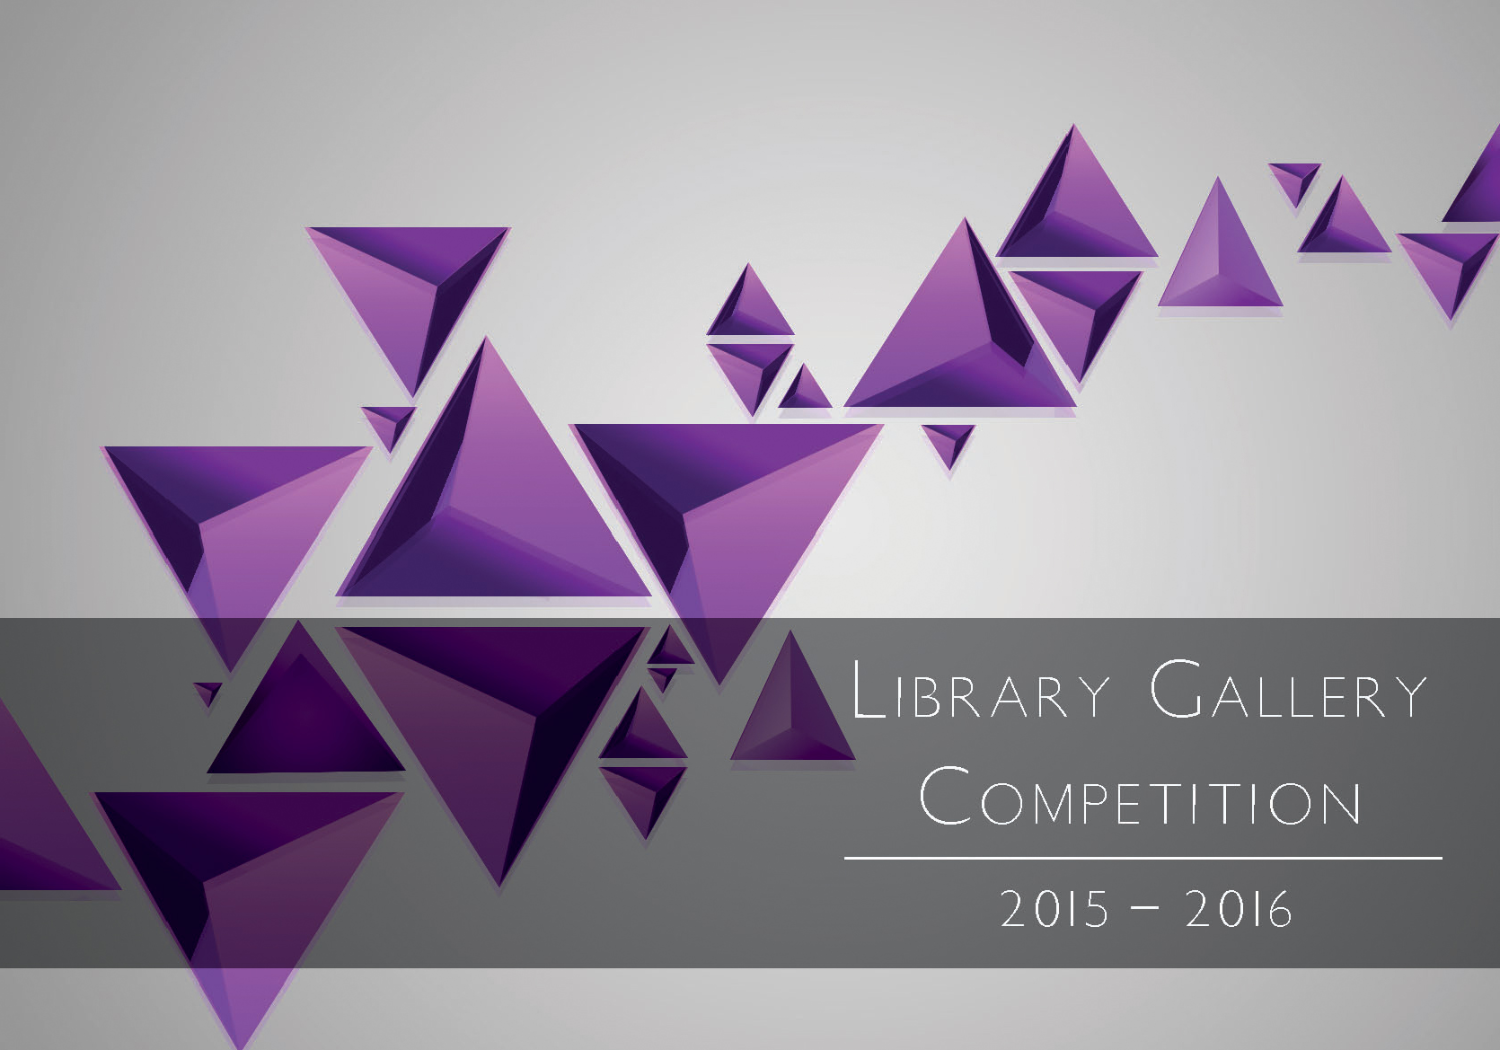 Library Gallery 2015-2016